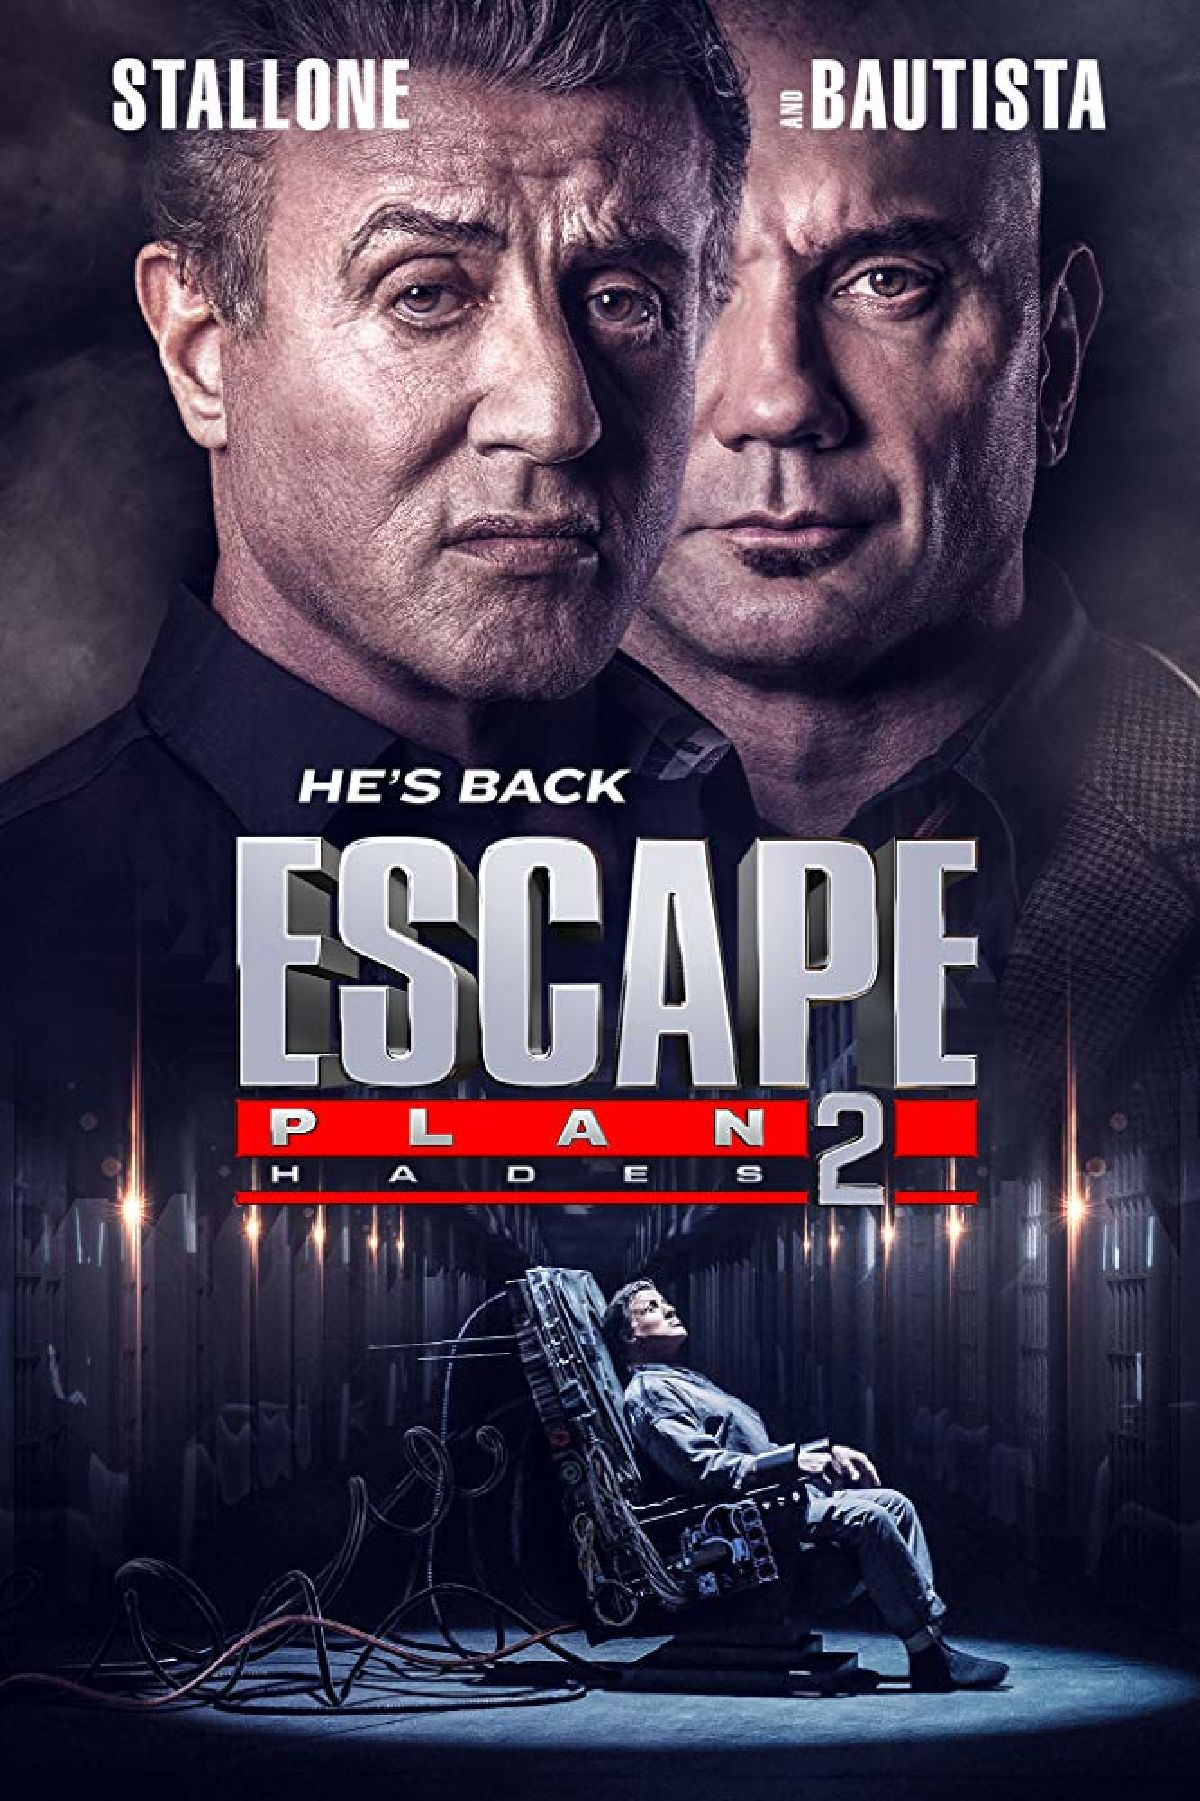 'Escape Plan II' movie poster